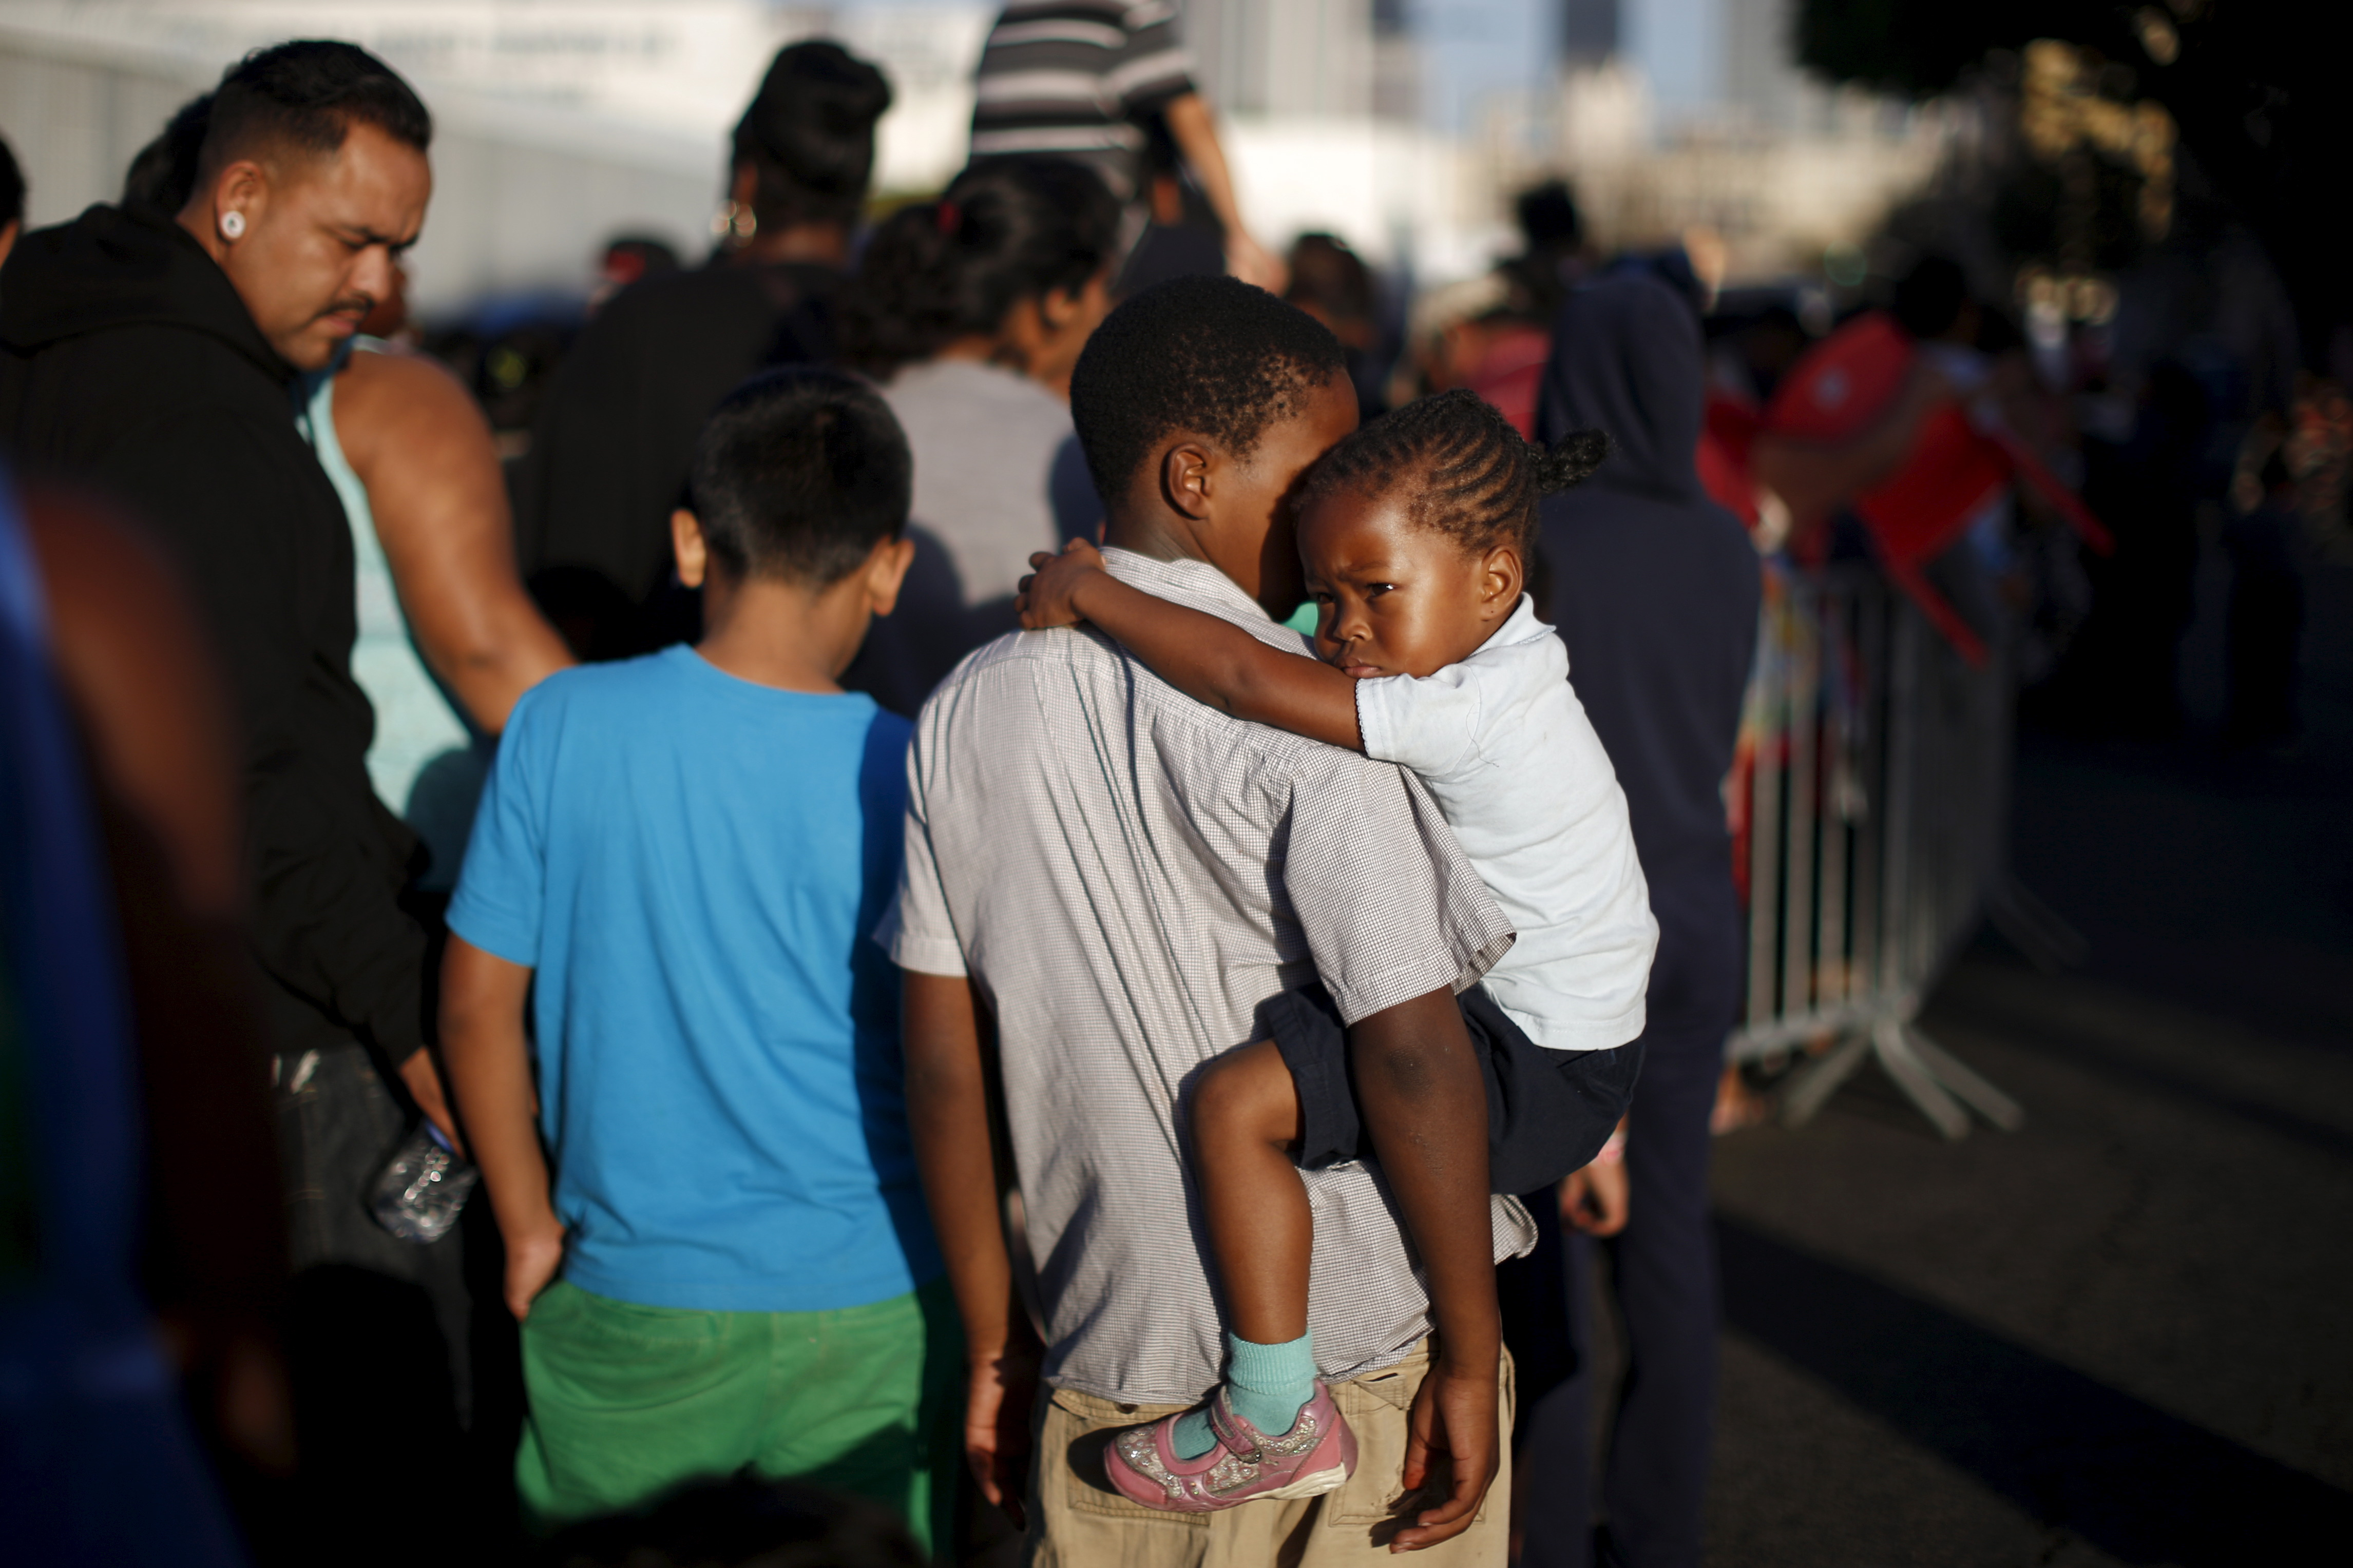 People wait in line at the Fred Jordan Mission annual back to school giveaway of shoes, clothing and backpacks for more than 4,000 homeless and underprivileged children in Los Angeles, California, United States, October 1, 2015.